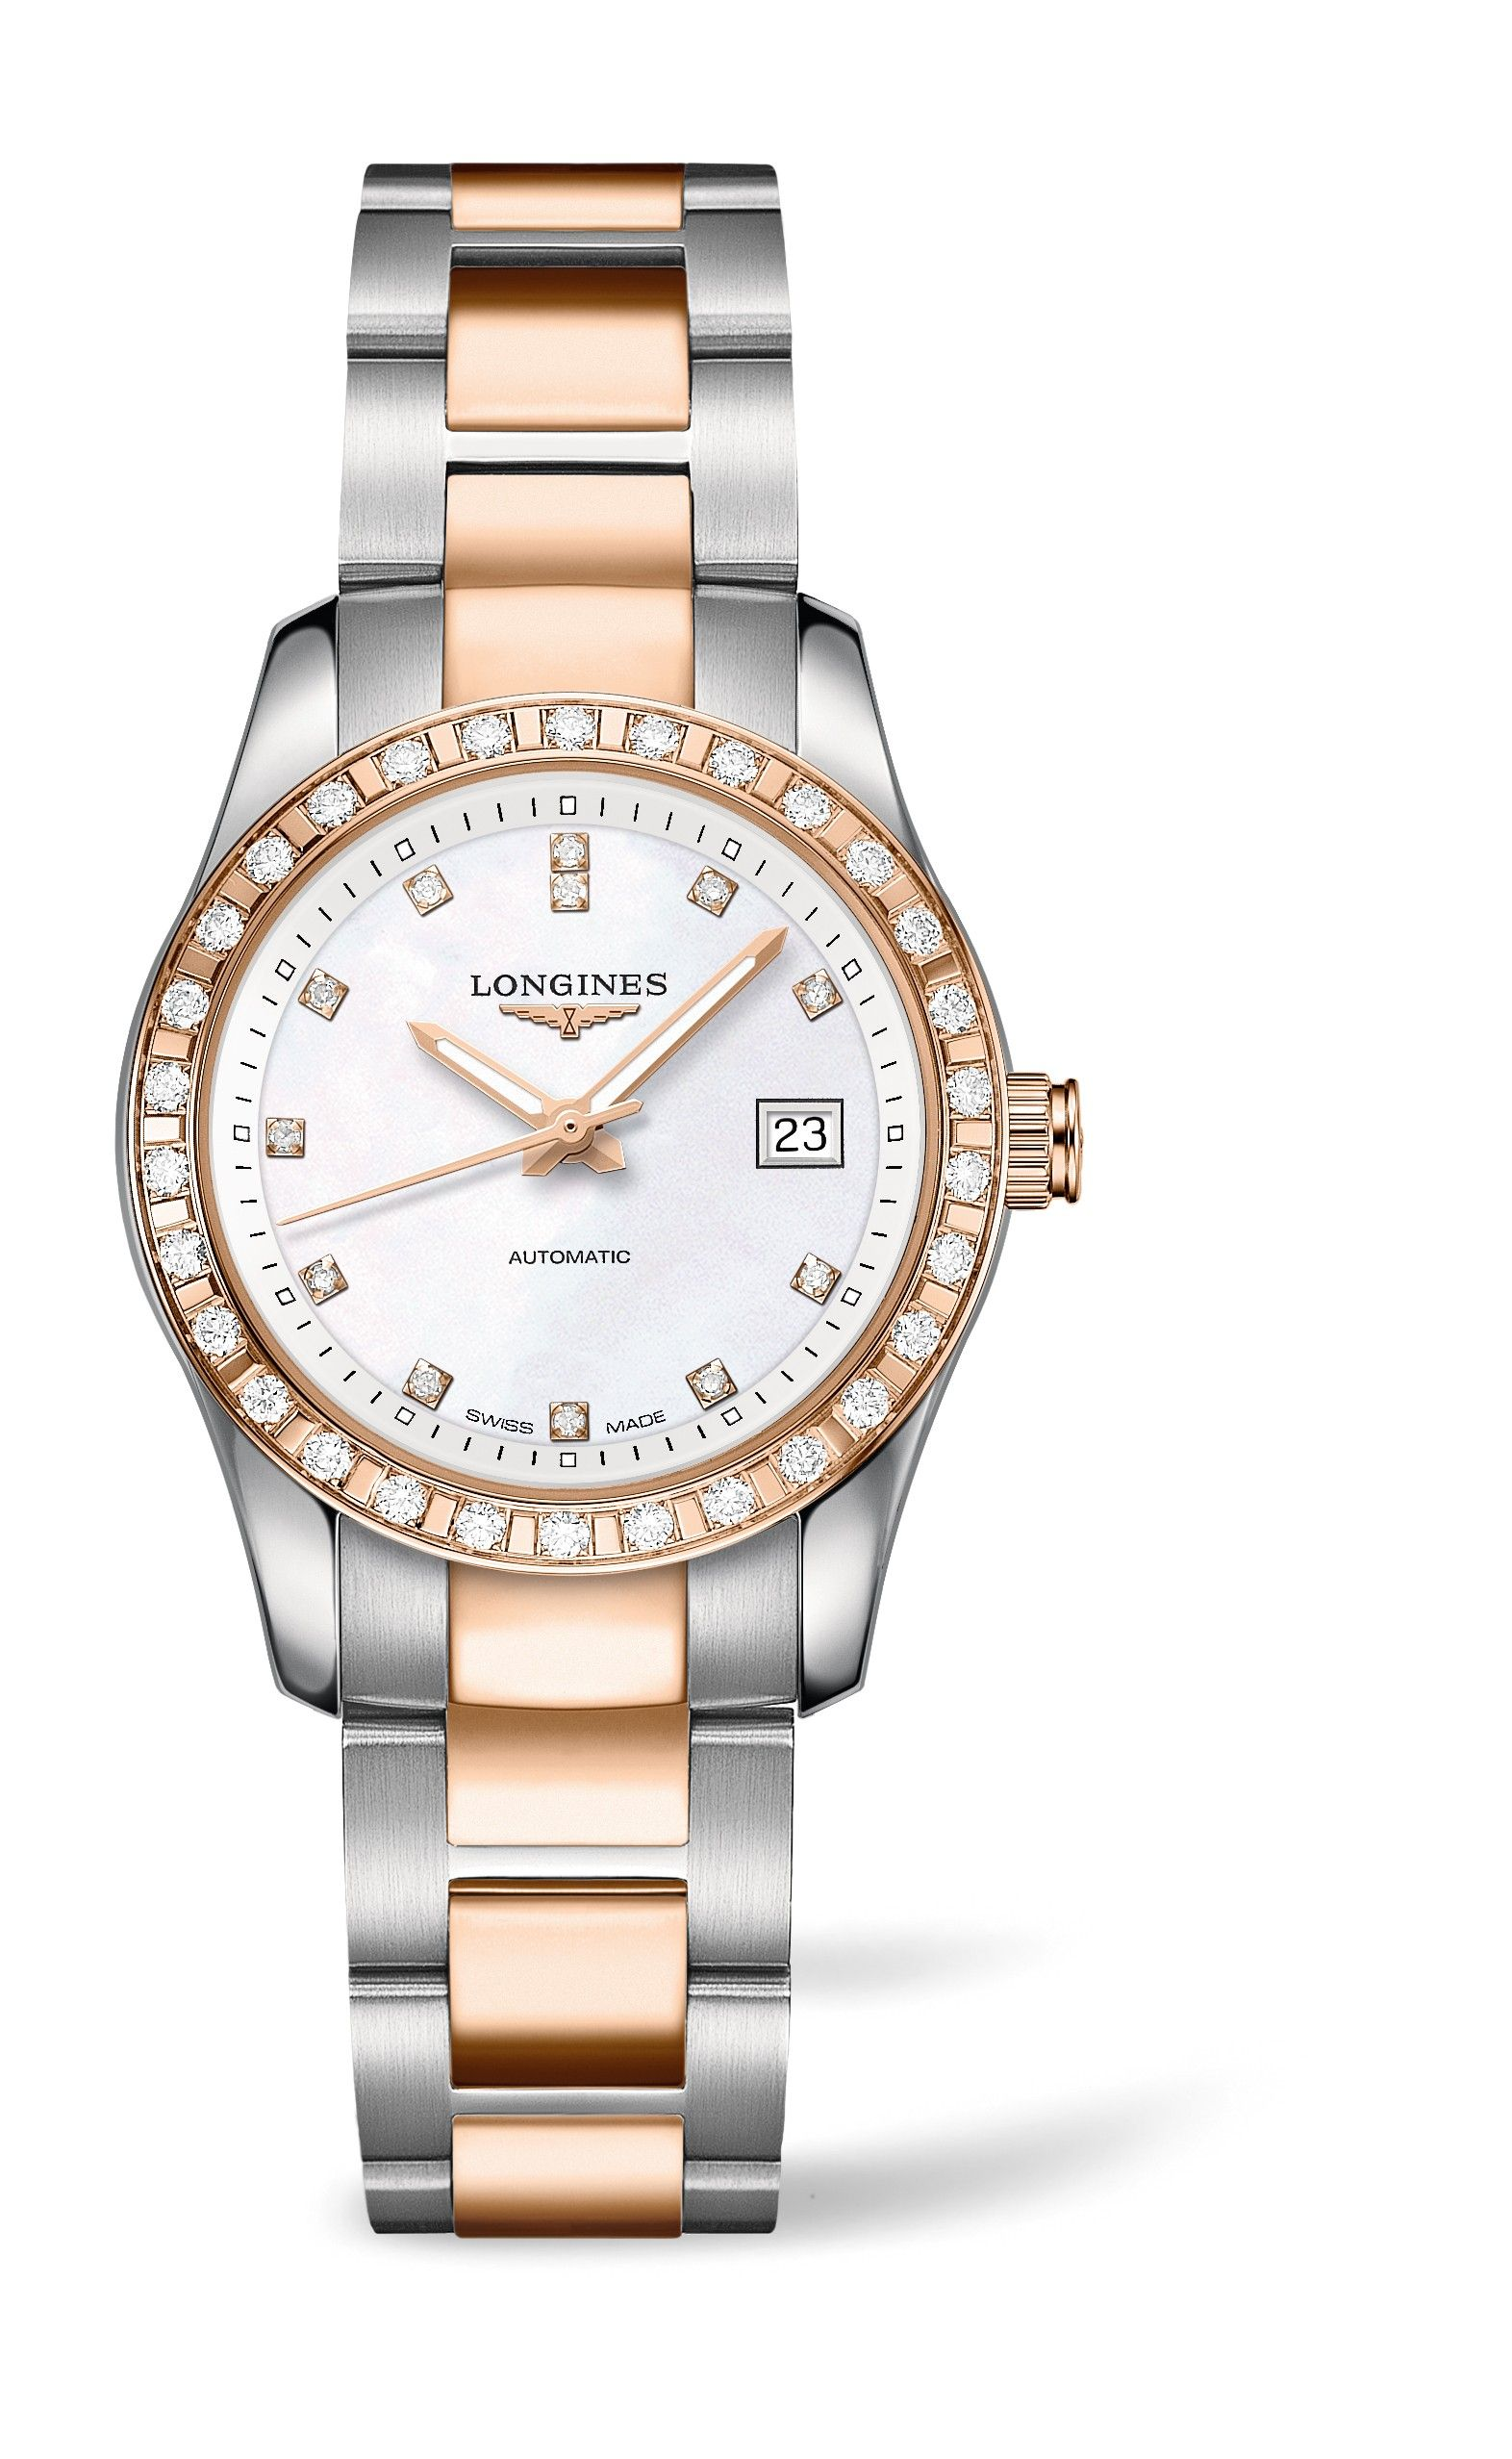 6f55c33a4 The Longines Conquest Classic ladies' two-tone diamond-set watch has a  stunning 18ct rose gold bezel adorned with 30 diamonds, set onto a  stainless steel ...